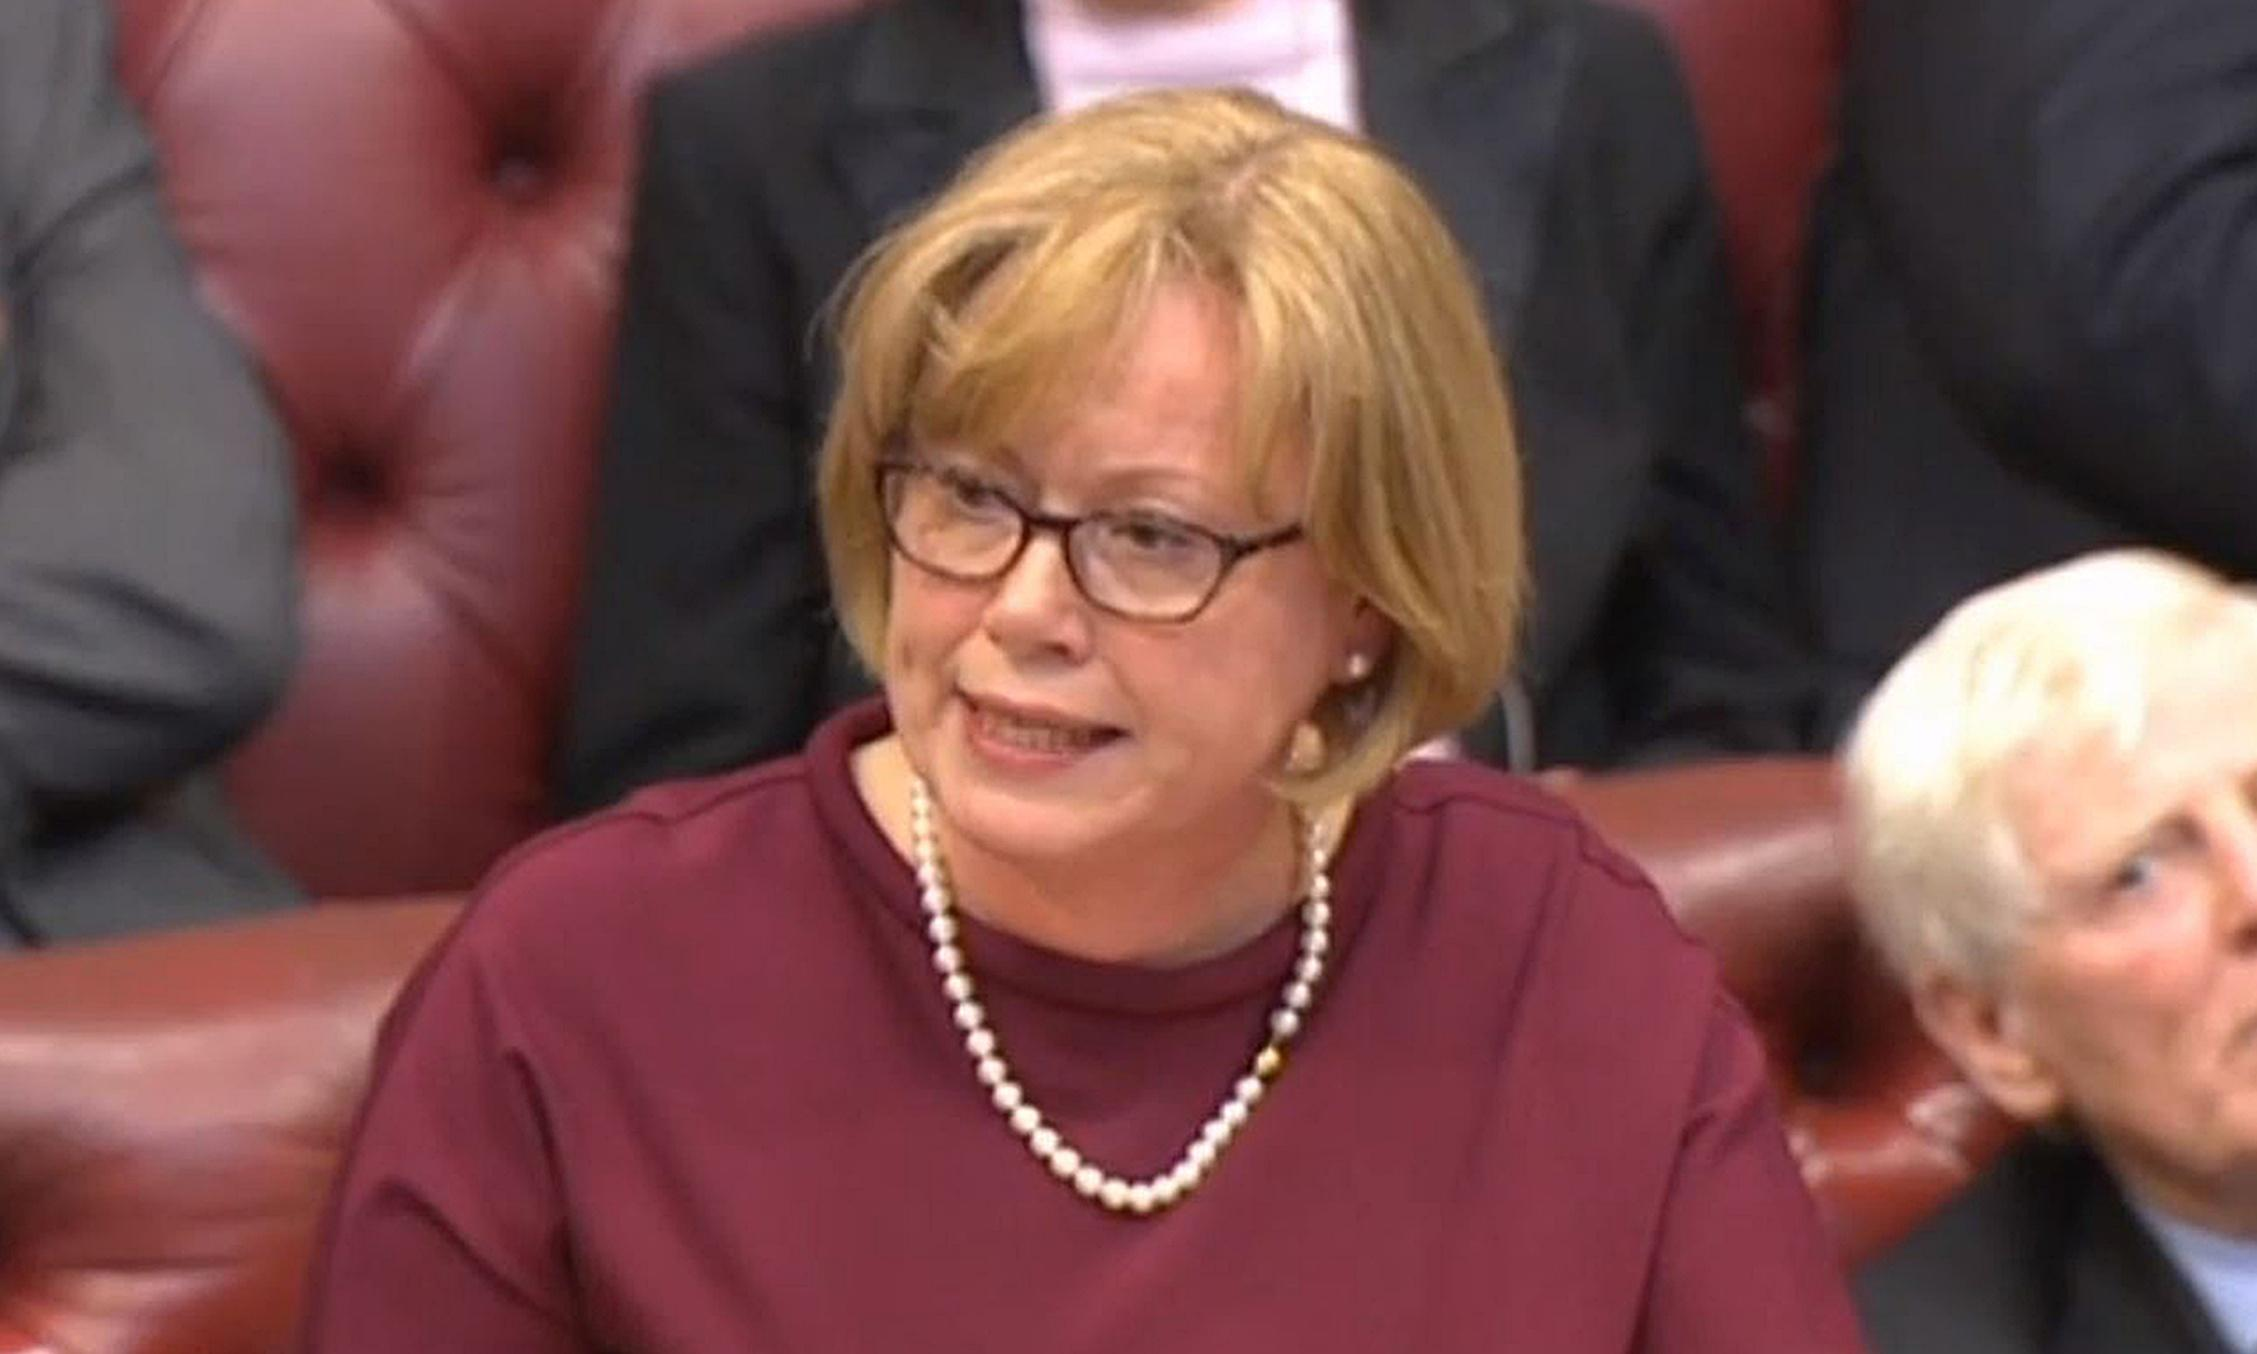 Angela Smith launches bid to commission report on no-deal Brexit risks